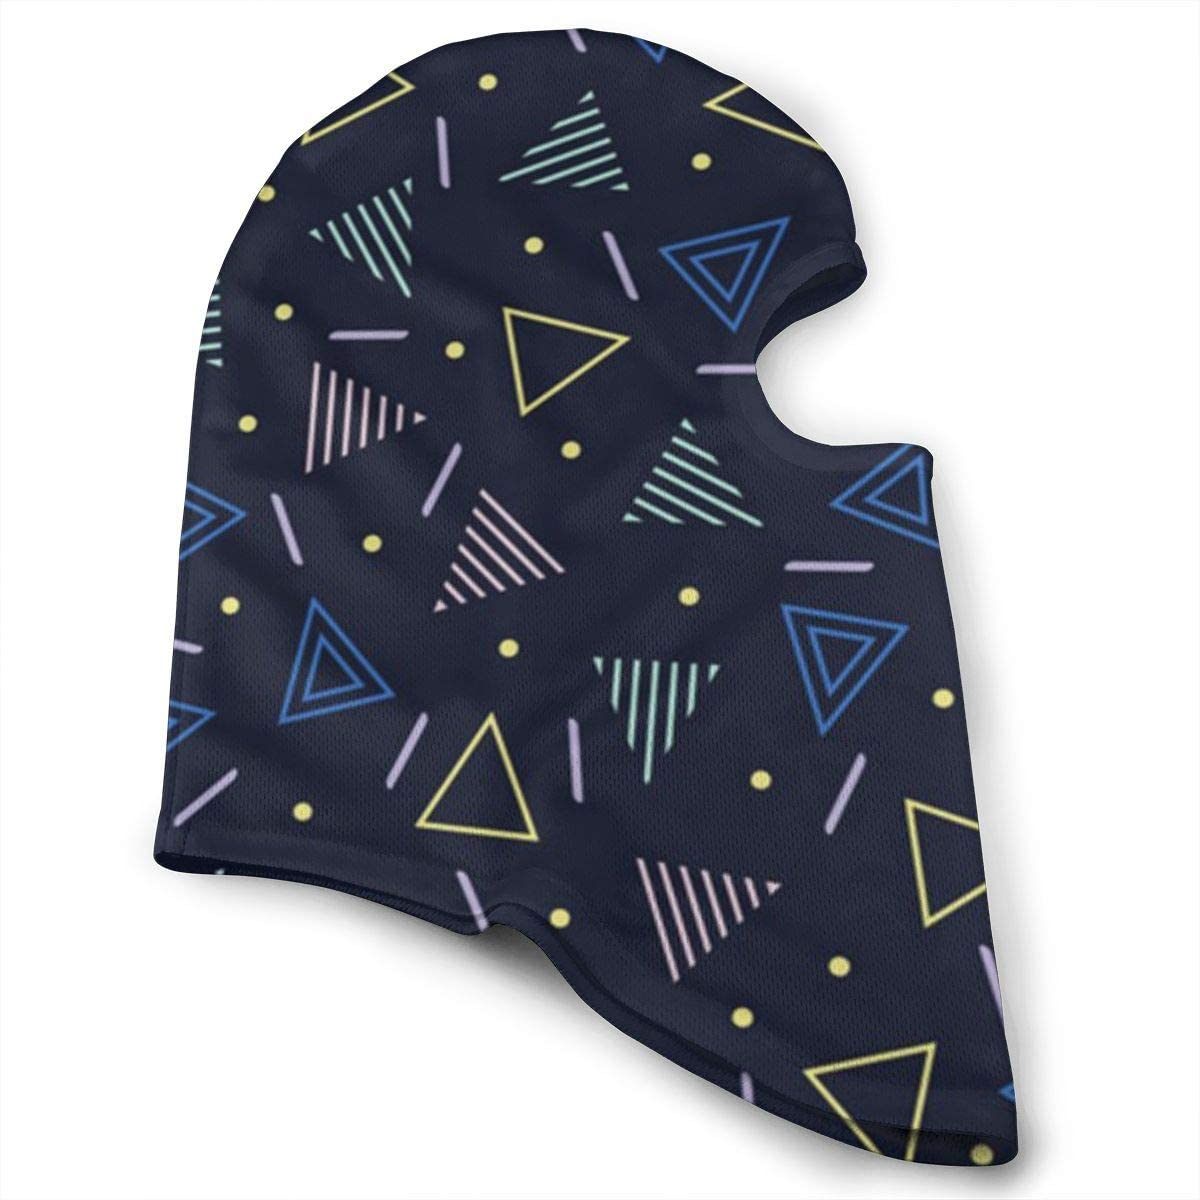 CAClifestyle Abstract Geometric Patterns Unisex Windproof Balaclavas Full Face Mask Hood